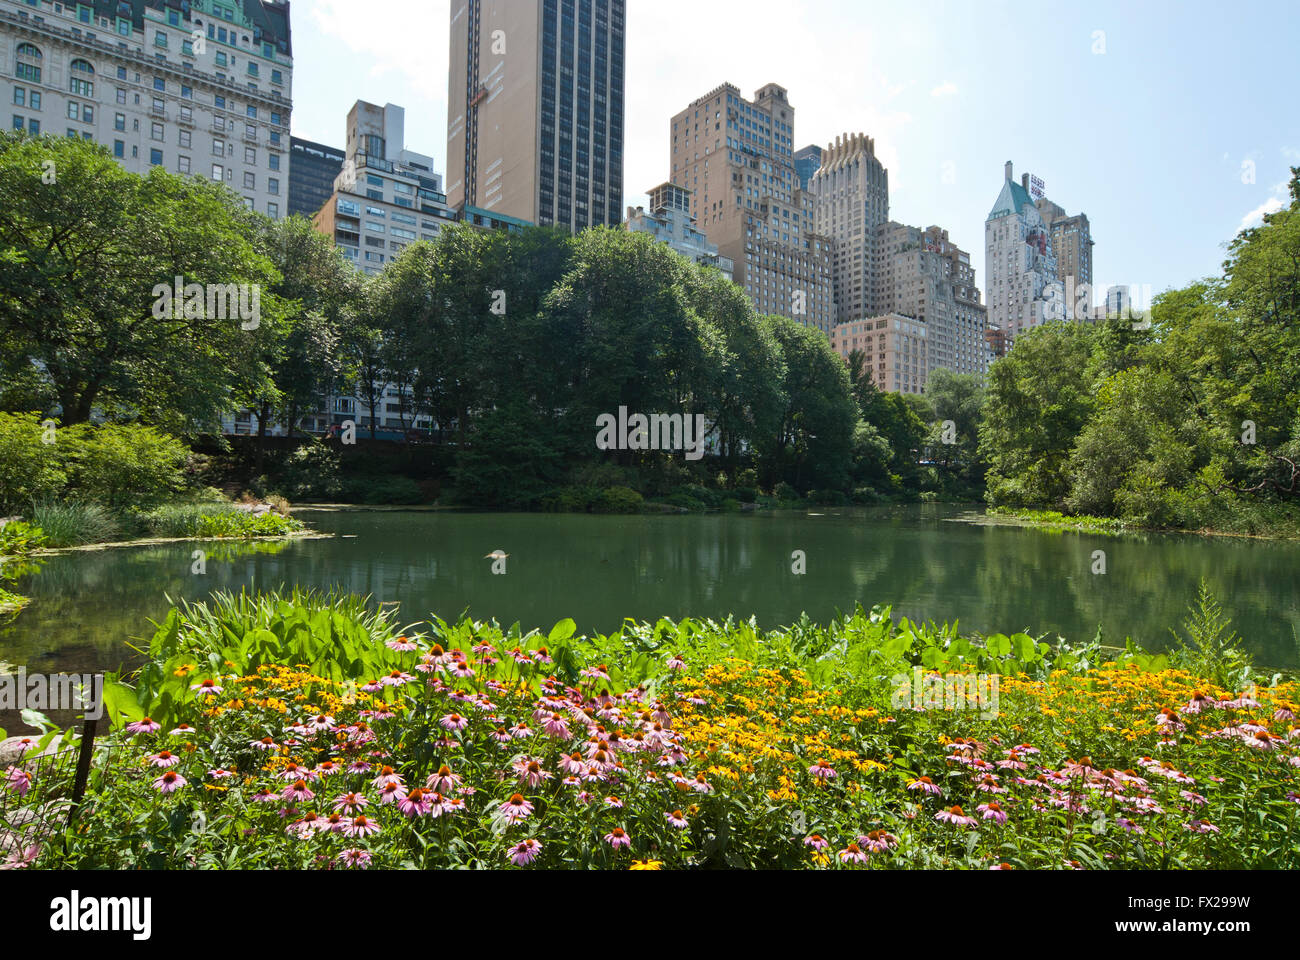 Central Park NYC, New York, USA - Stock Image